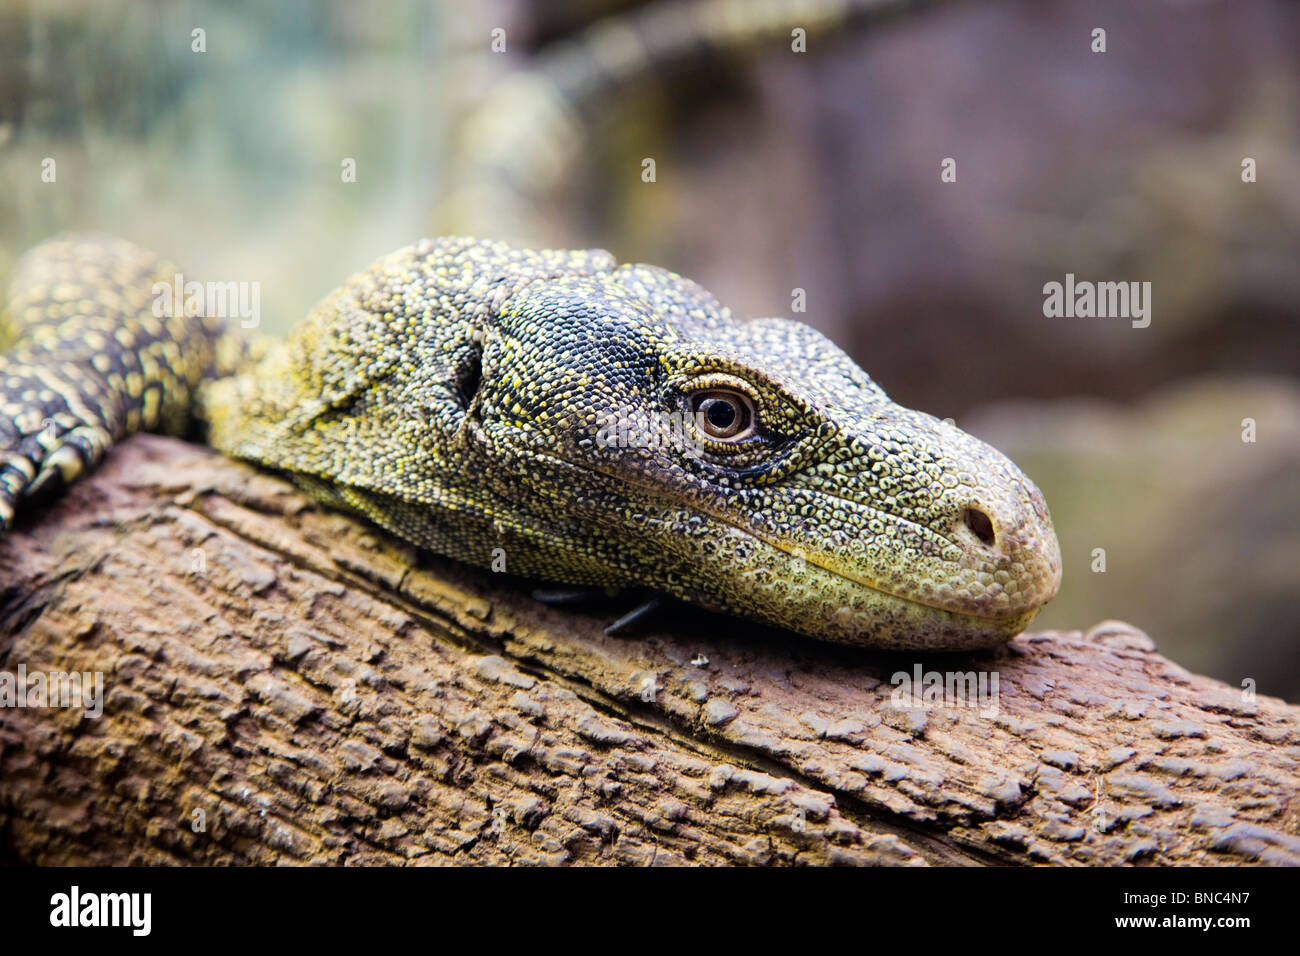 Lizard Resting Stock Photos & Lizard Resting Stock Images - Alamy